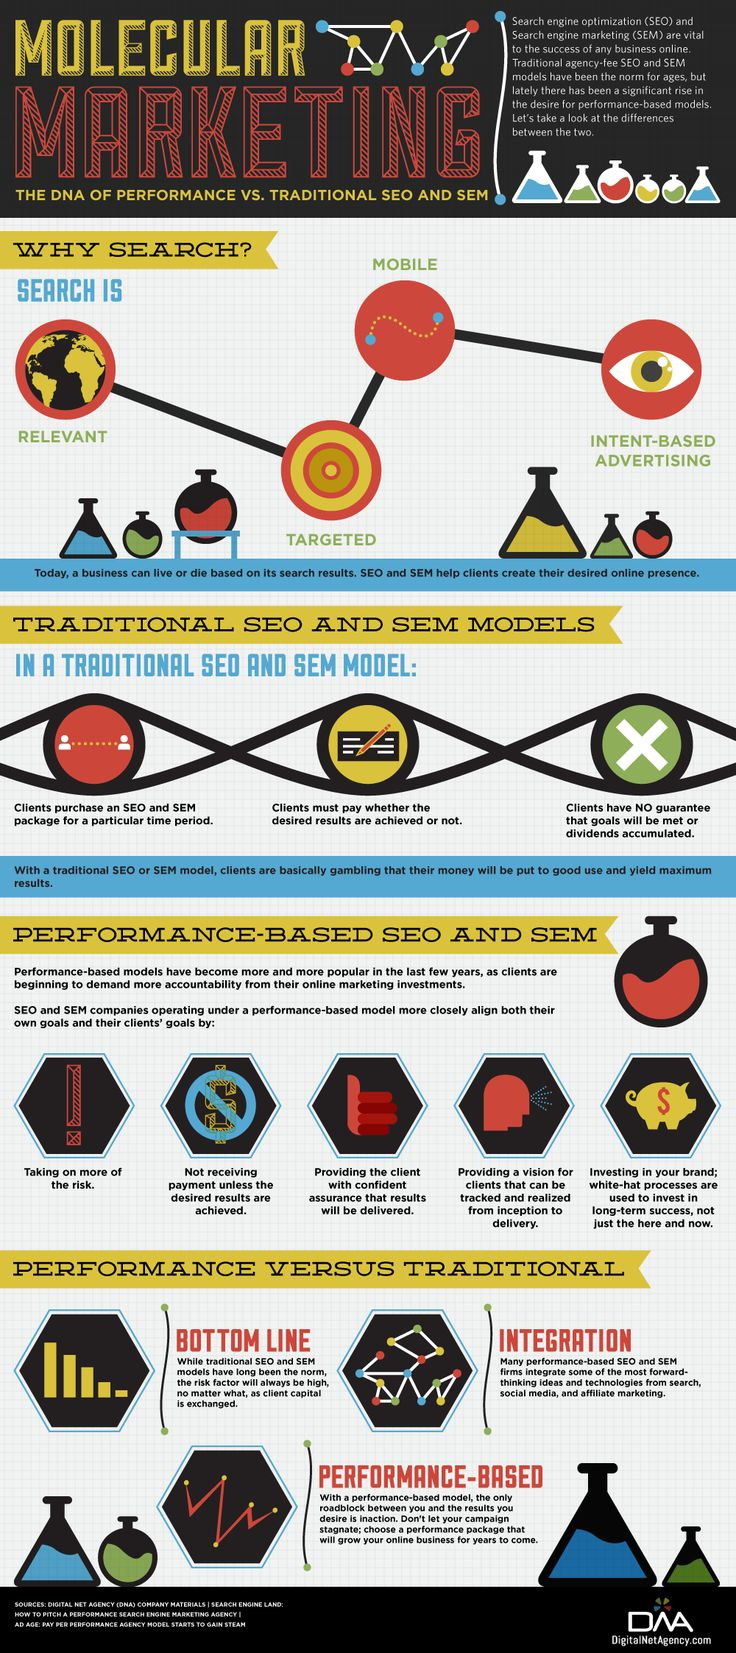 Molecular marketin, The DNA of performance vs. traditional SEO and SEM #infographic Learn more about Search Engine Optimization at www.purposeadvertising.com #advertising with a #purpose